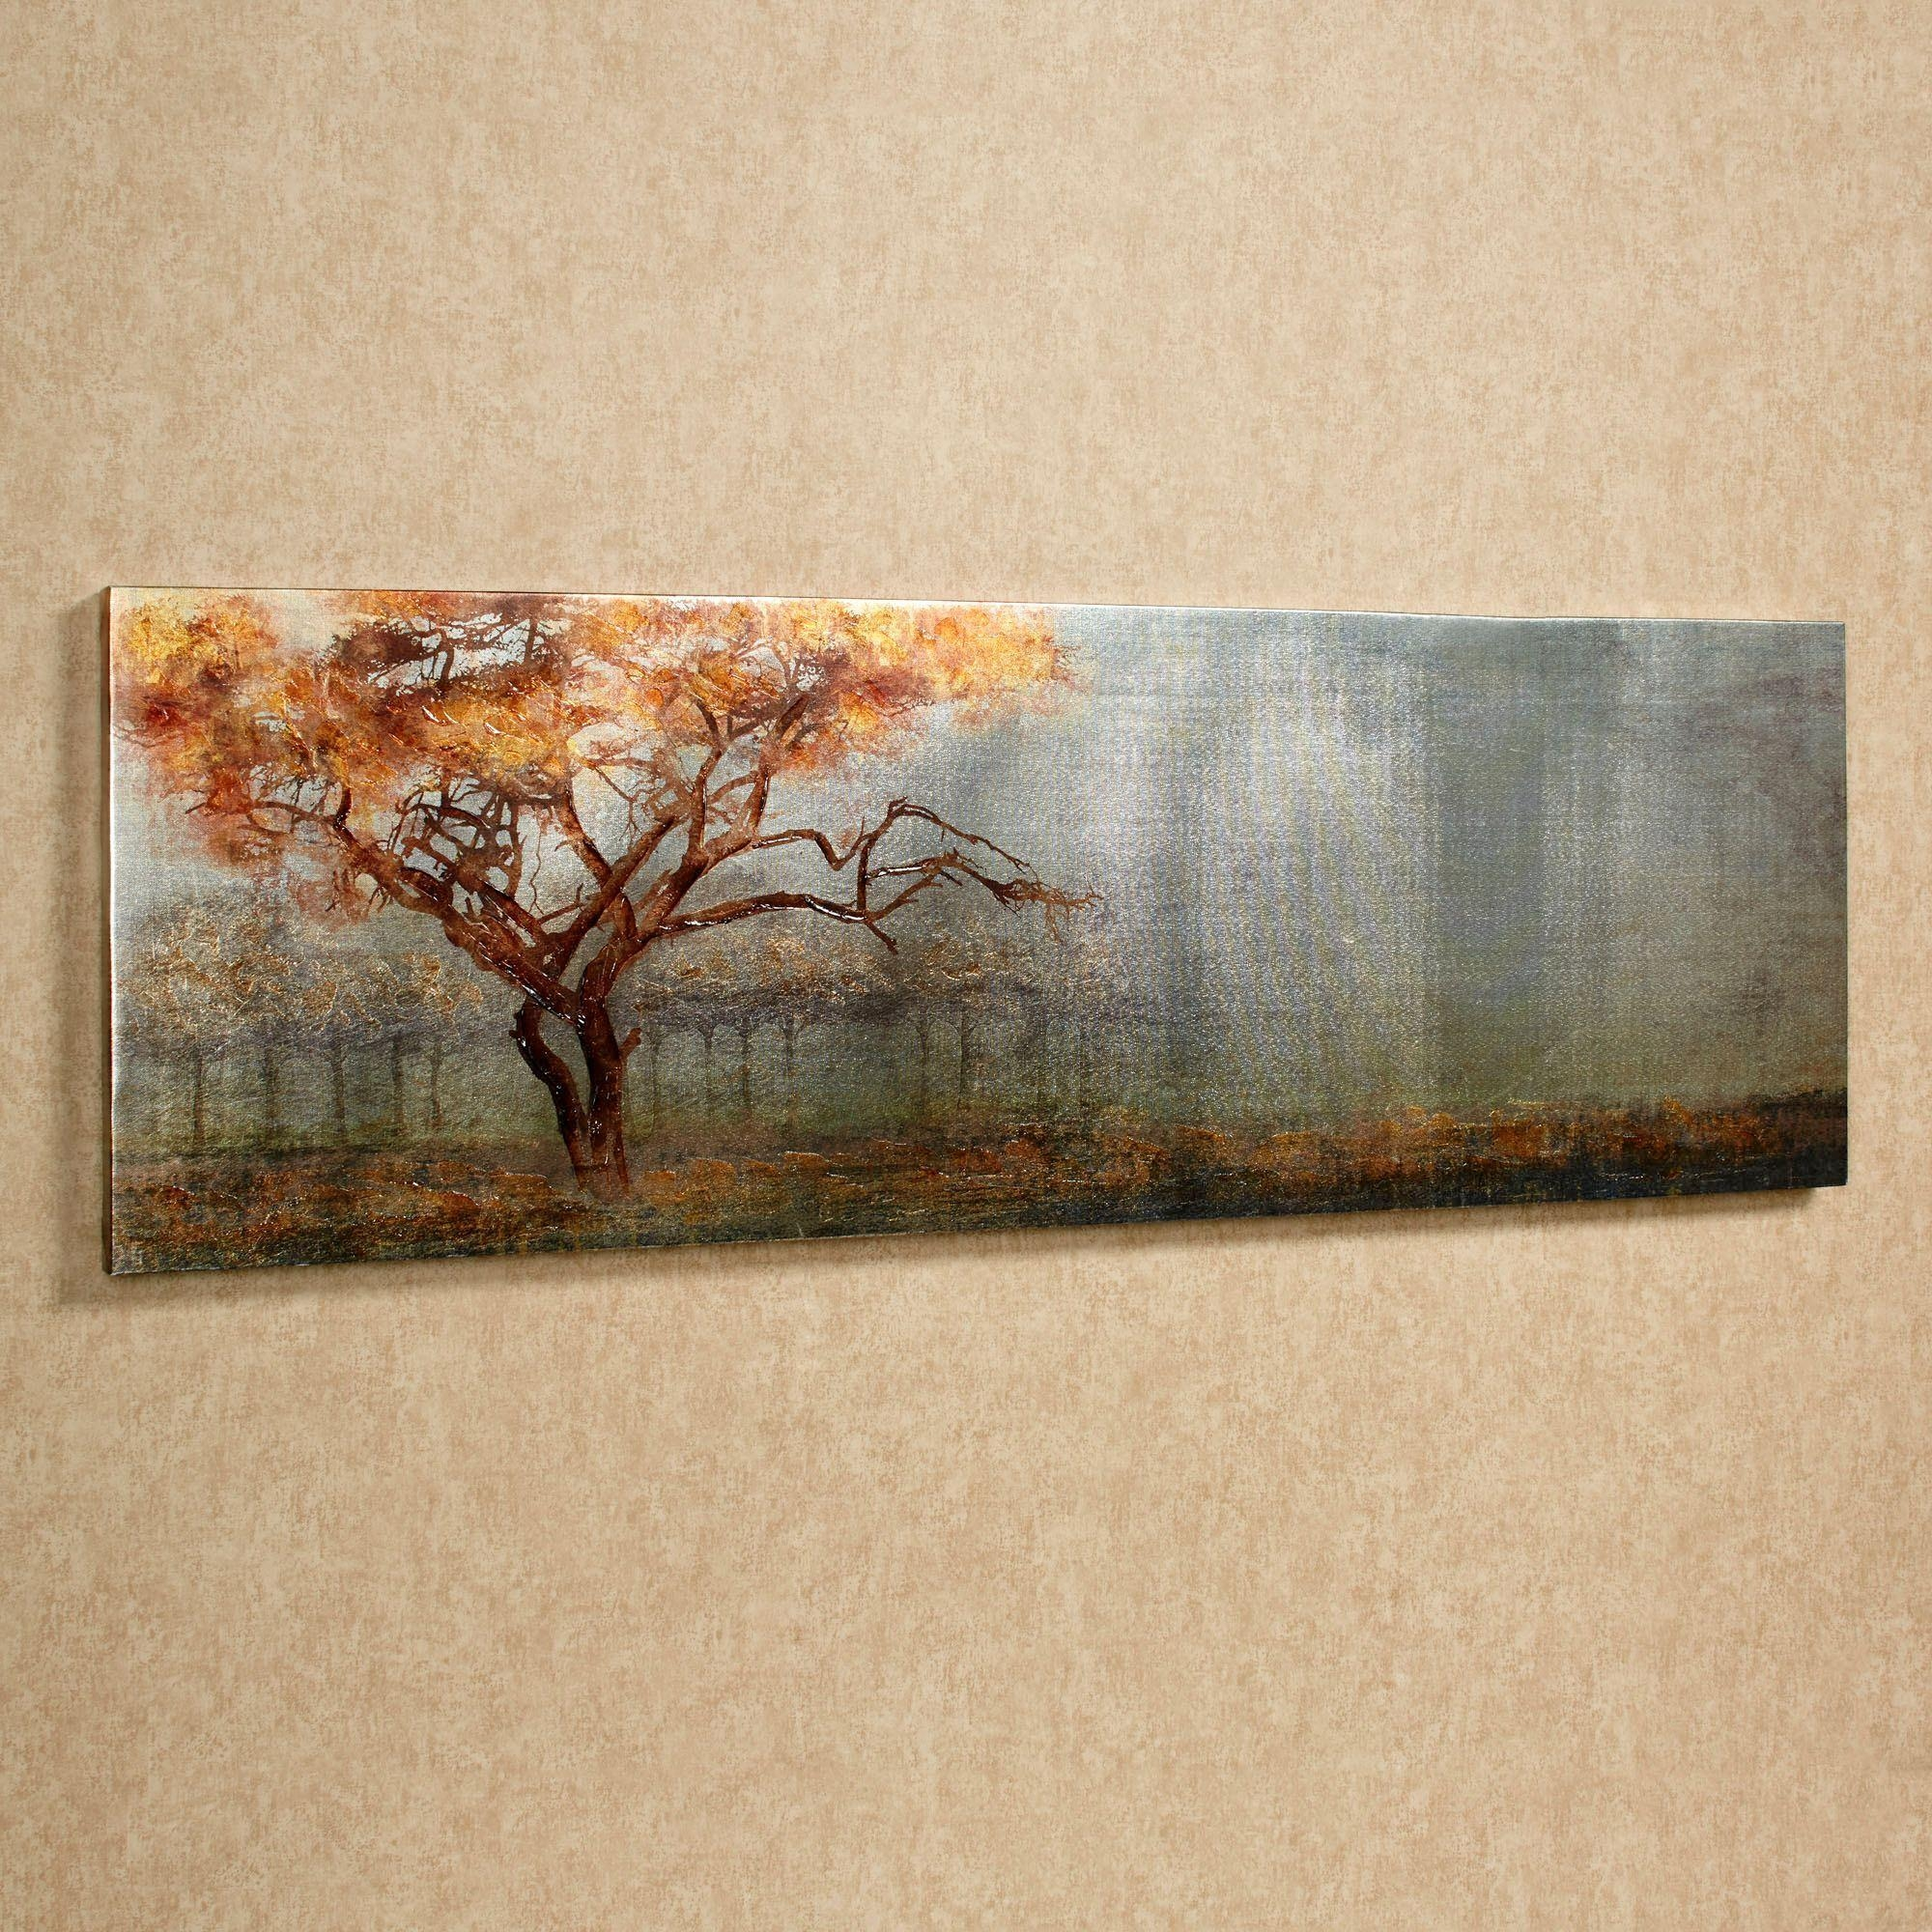 Art, Wall Sculpture, Wall Tapestries, Canvas Art, Framed Prints For Horizontal Canvas Wall Art (Image 3 of 20)